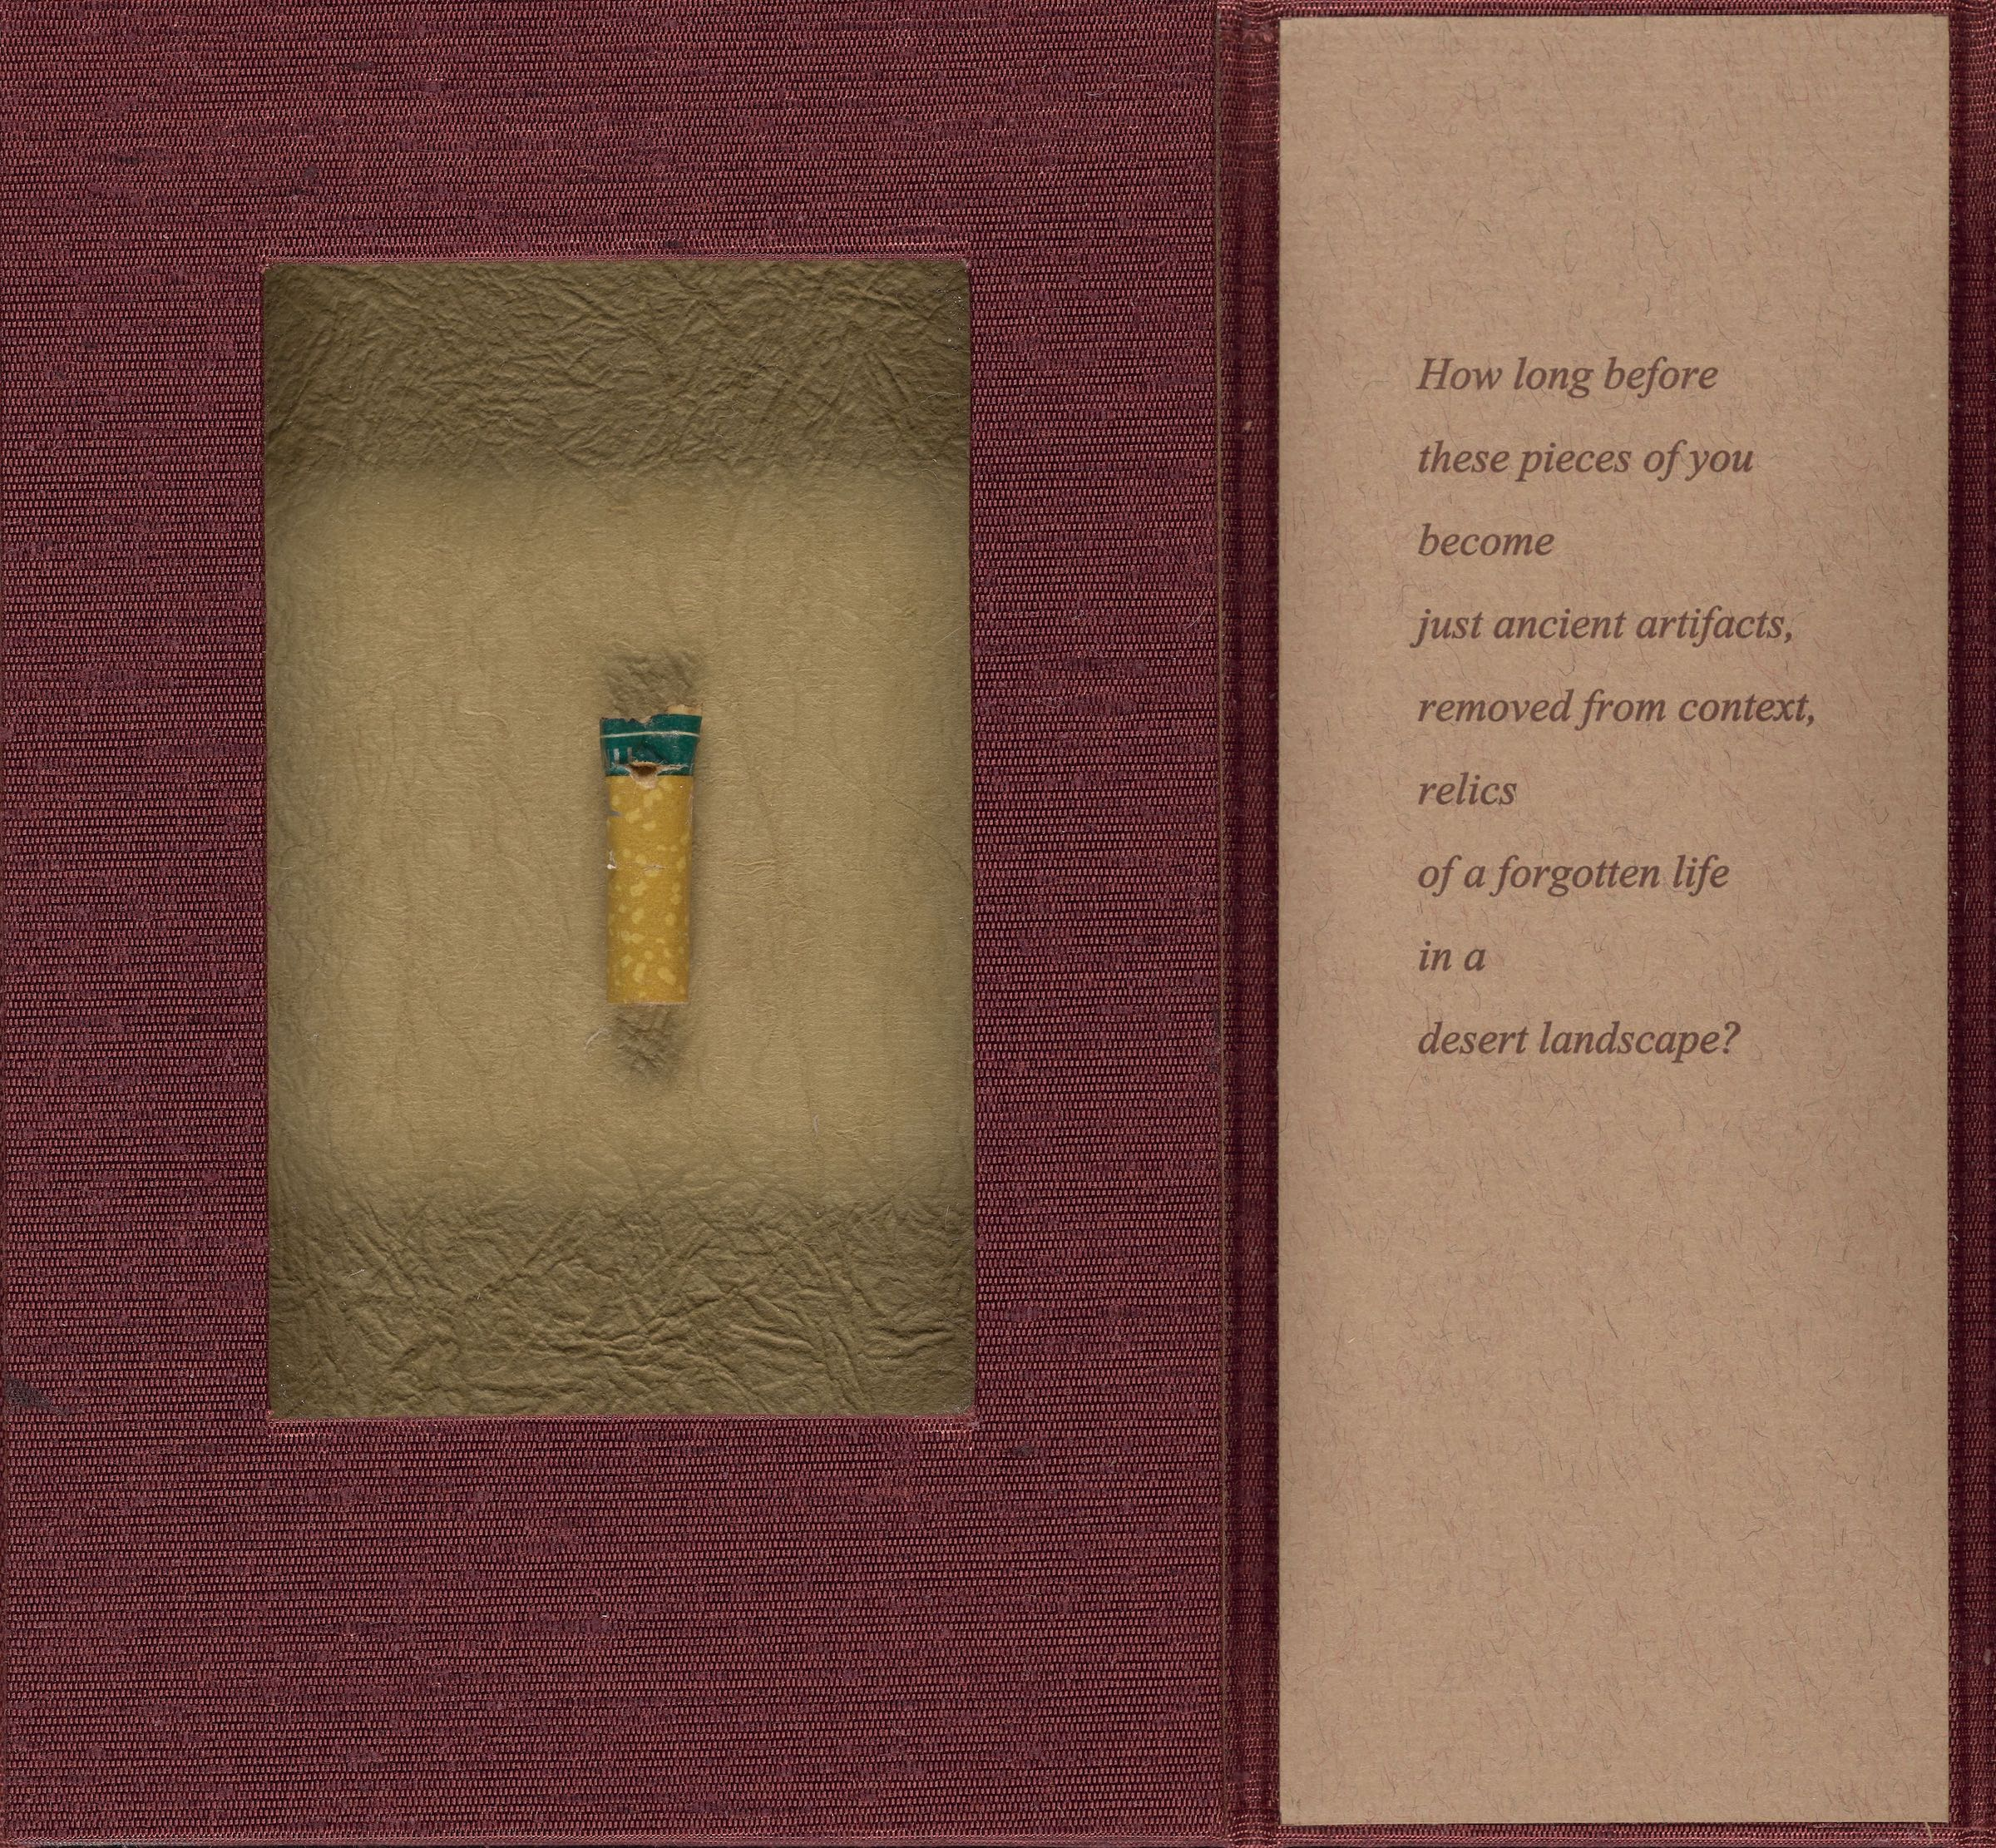 Photo of dark red artist book featuring cigarette butt and text on tan paper